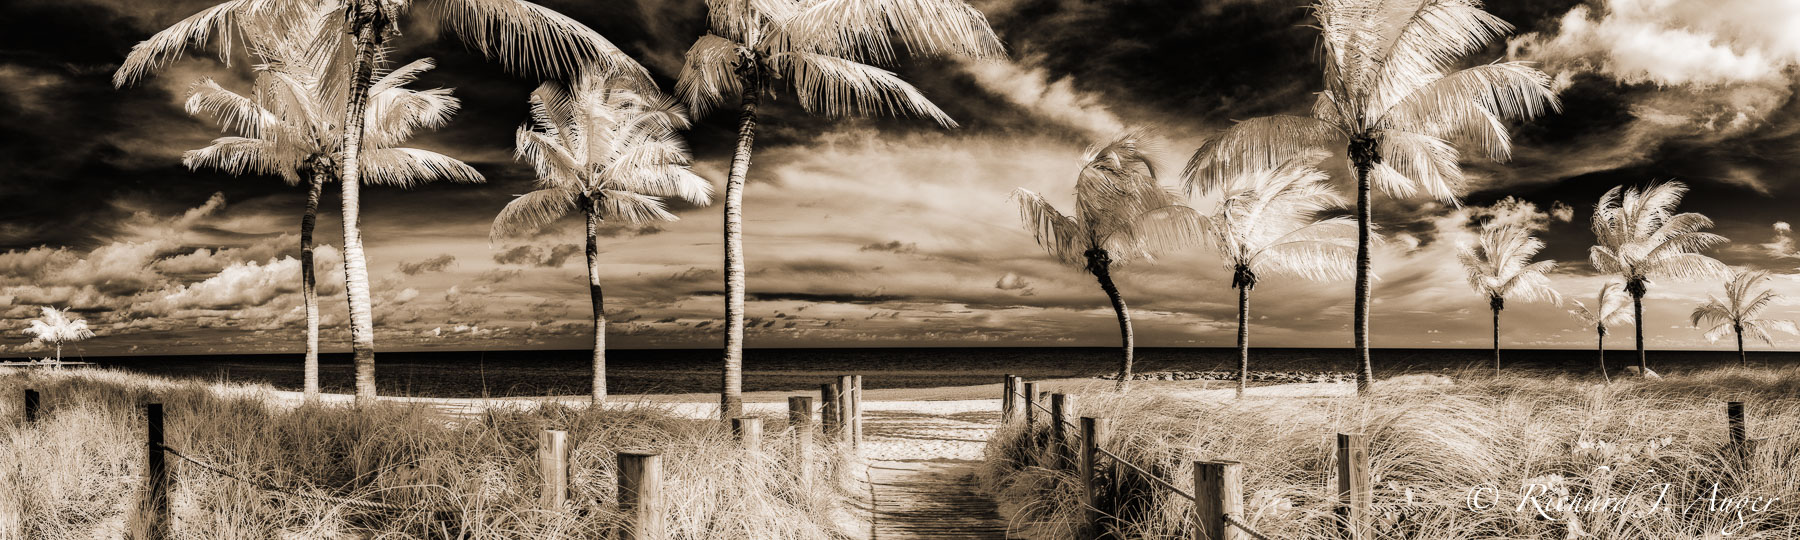 Key West, Florida, Smathers Beach, Monochrome, Sepia, Infared, Photography, Landscape, Richard Auger